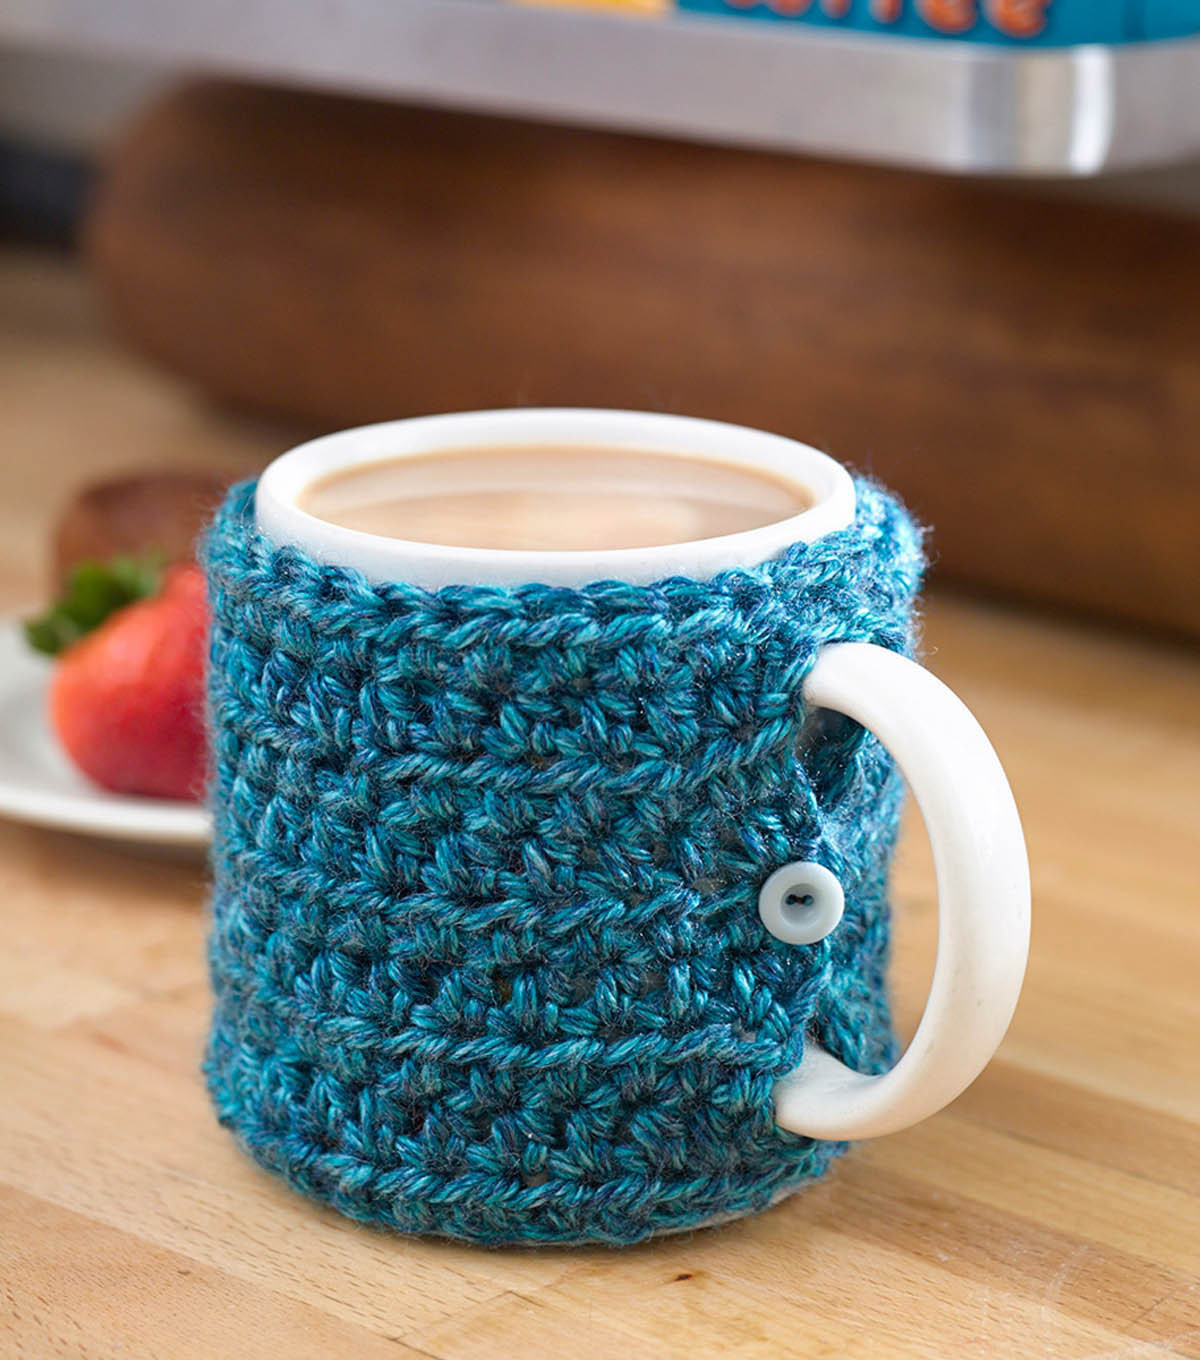 Crochet Coffee Cup Cozy Best Of Craftdrawer Crafts Free Easy to Crochet Mug Cozy Patterns Of Crochet Coffee Cup Cozy Inspirational 35 Easy Crochet Patterns